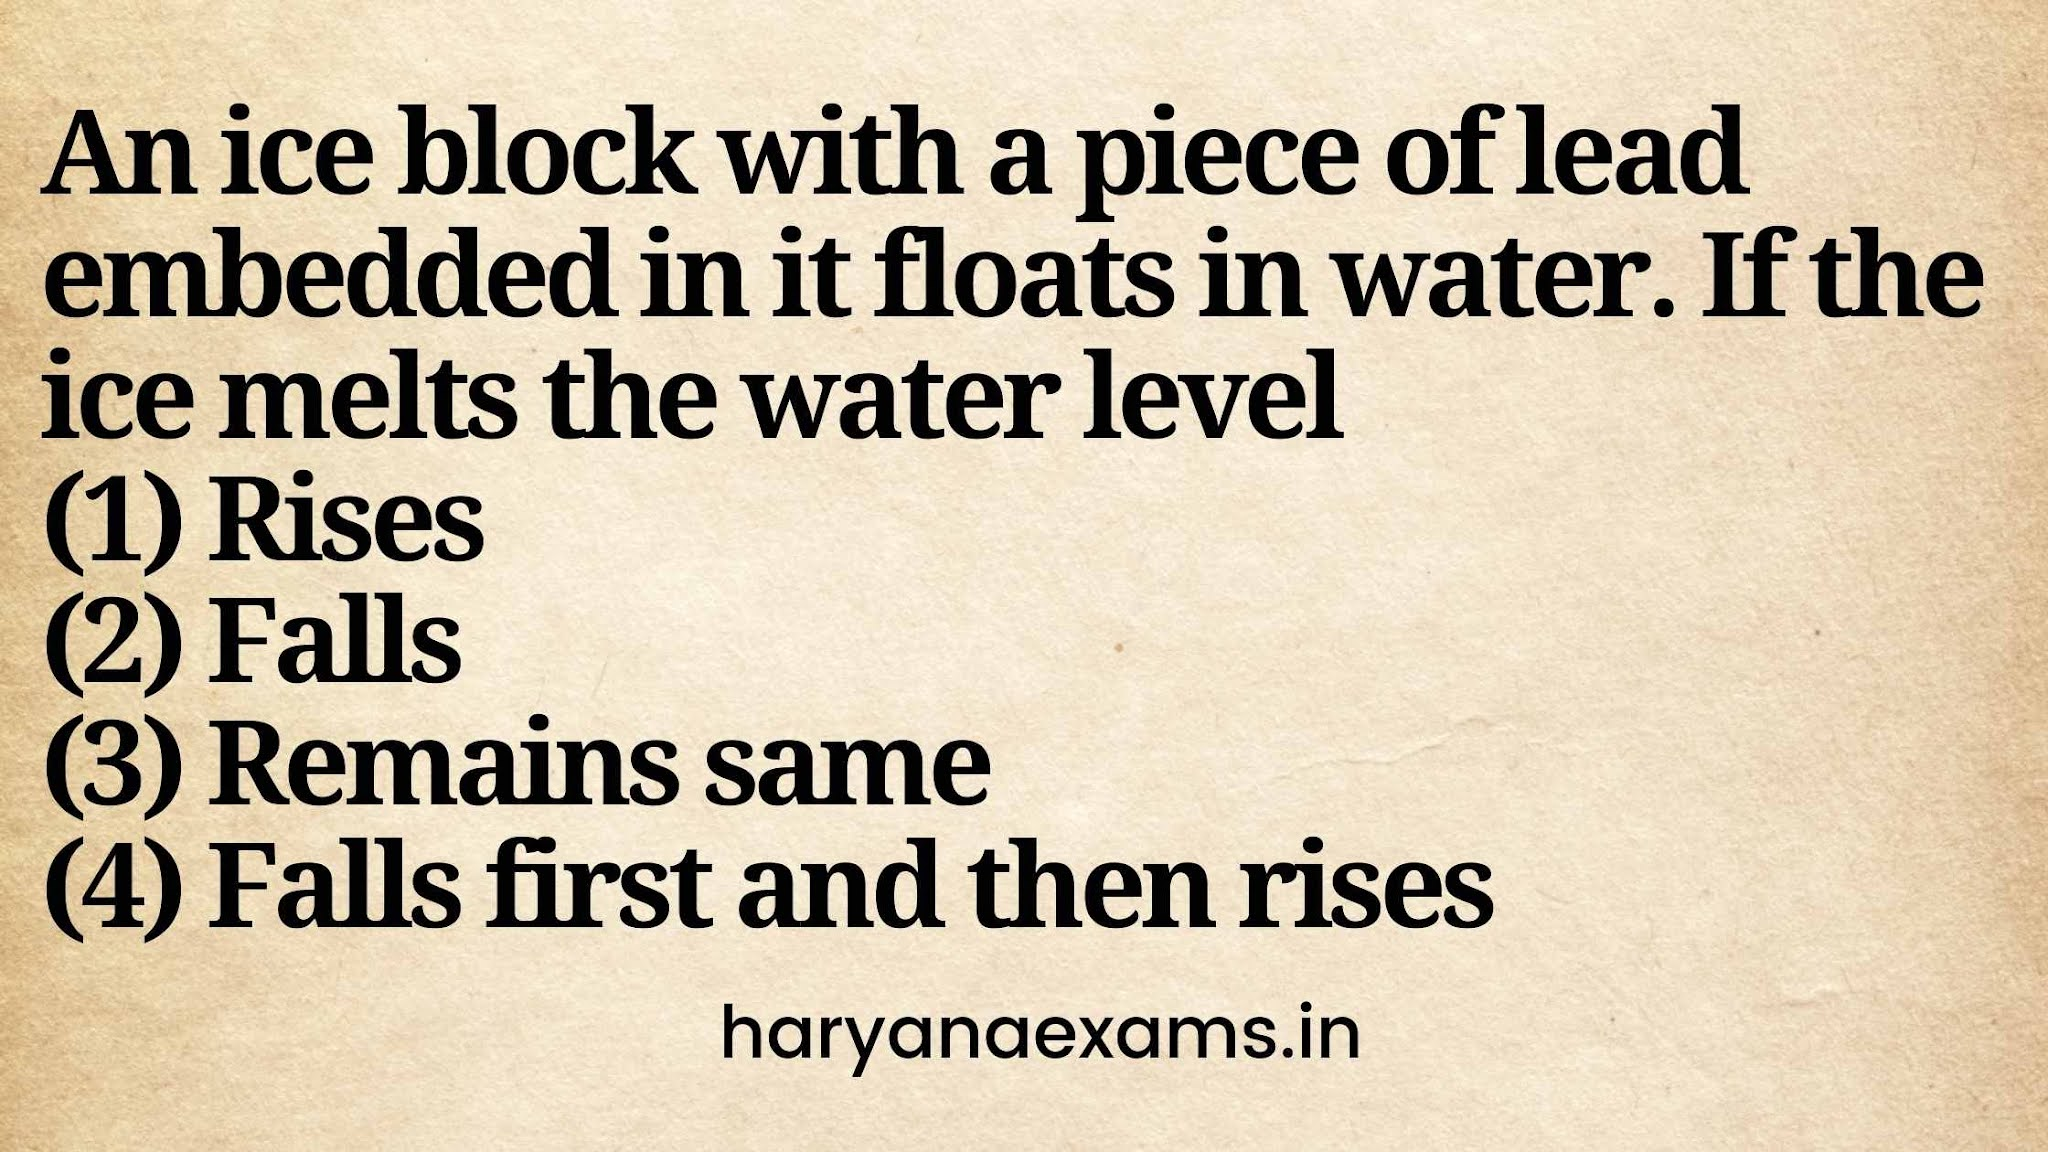 An ice block with a piece of lead embedded in it floats in water. If the ice melts the water level   (1) Rises   (2) Falls   (3) Remains same   (4) Falls first and then rises